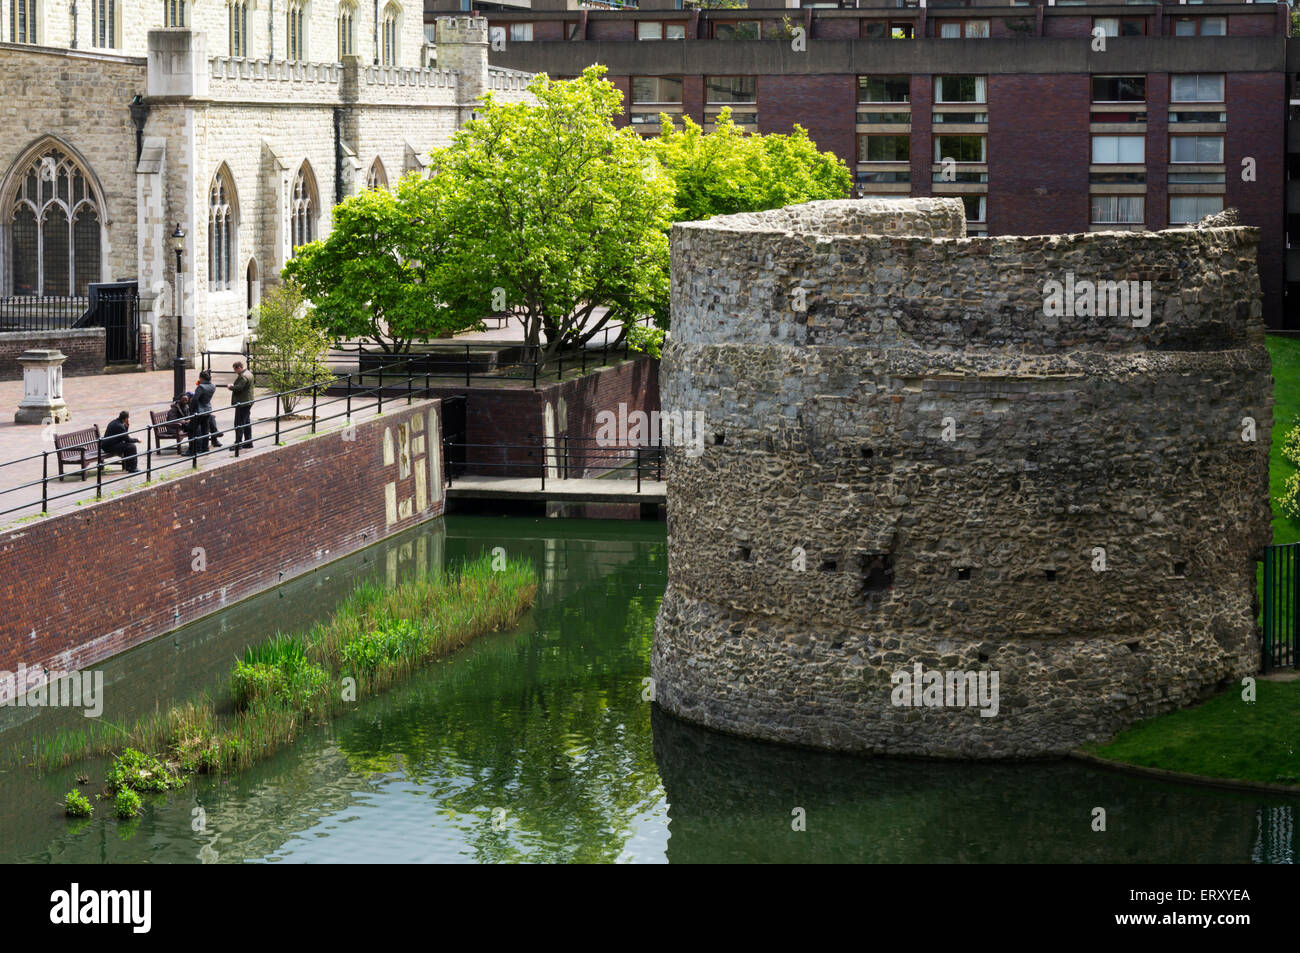 A thirteenth century bastion on London wall preserved within the Barbican housing estate. - Stock Image